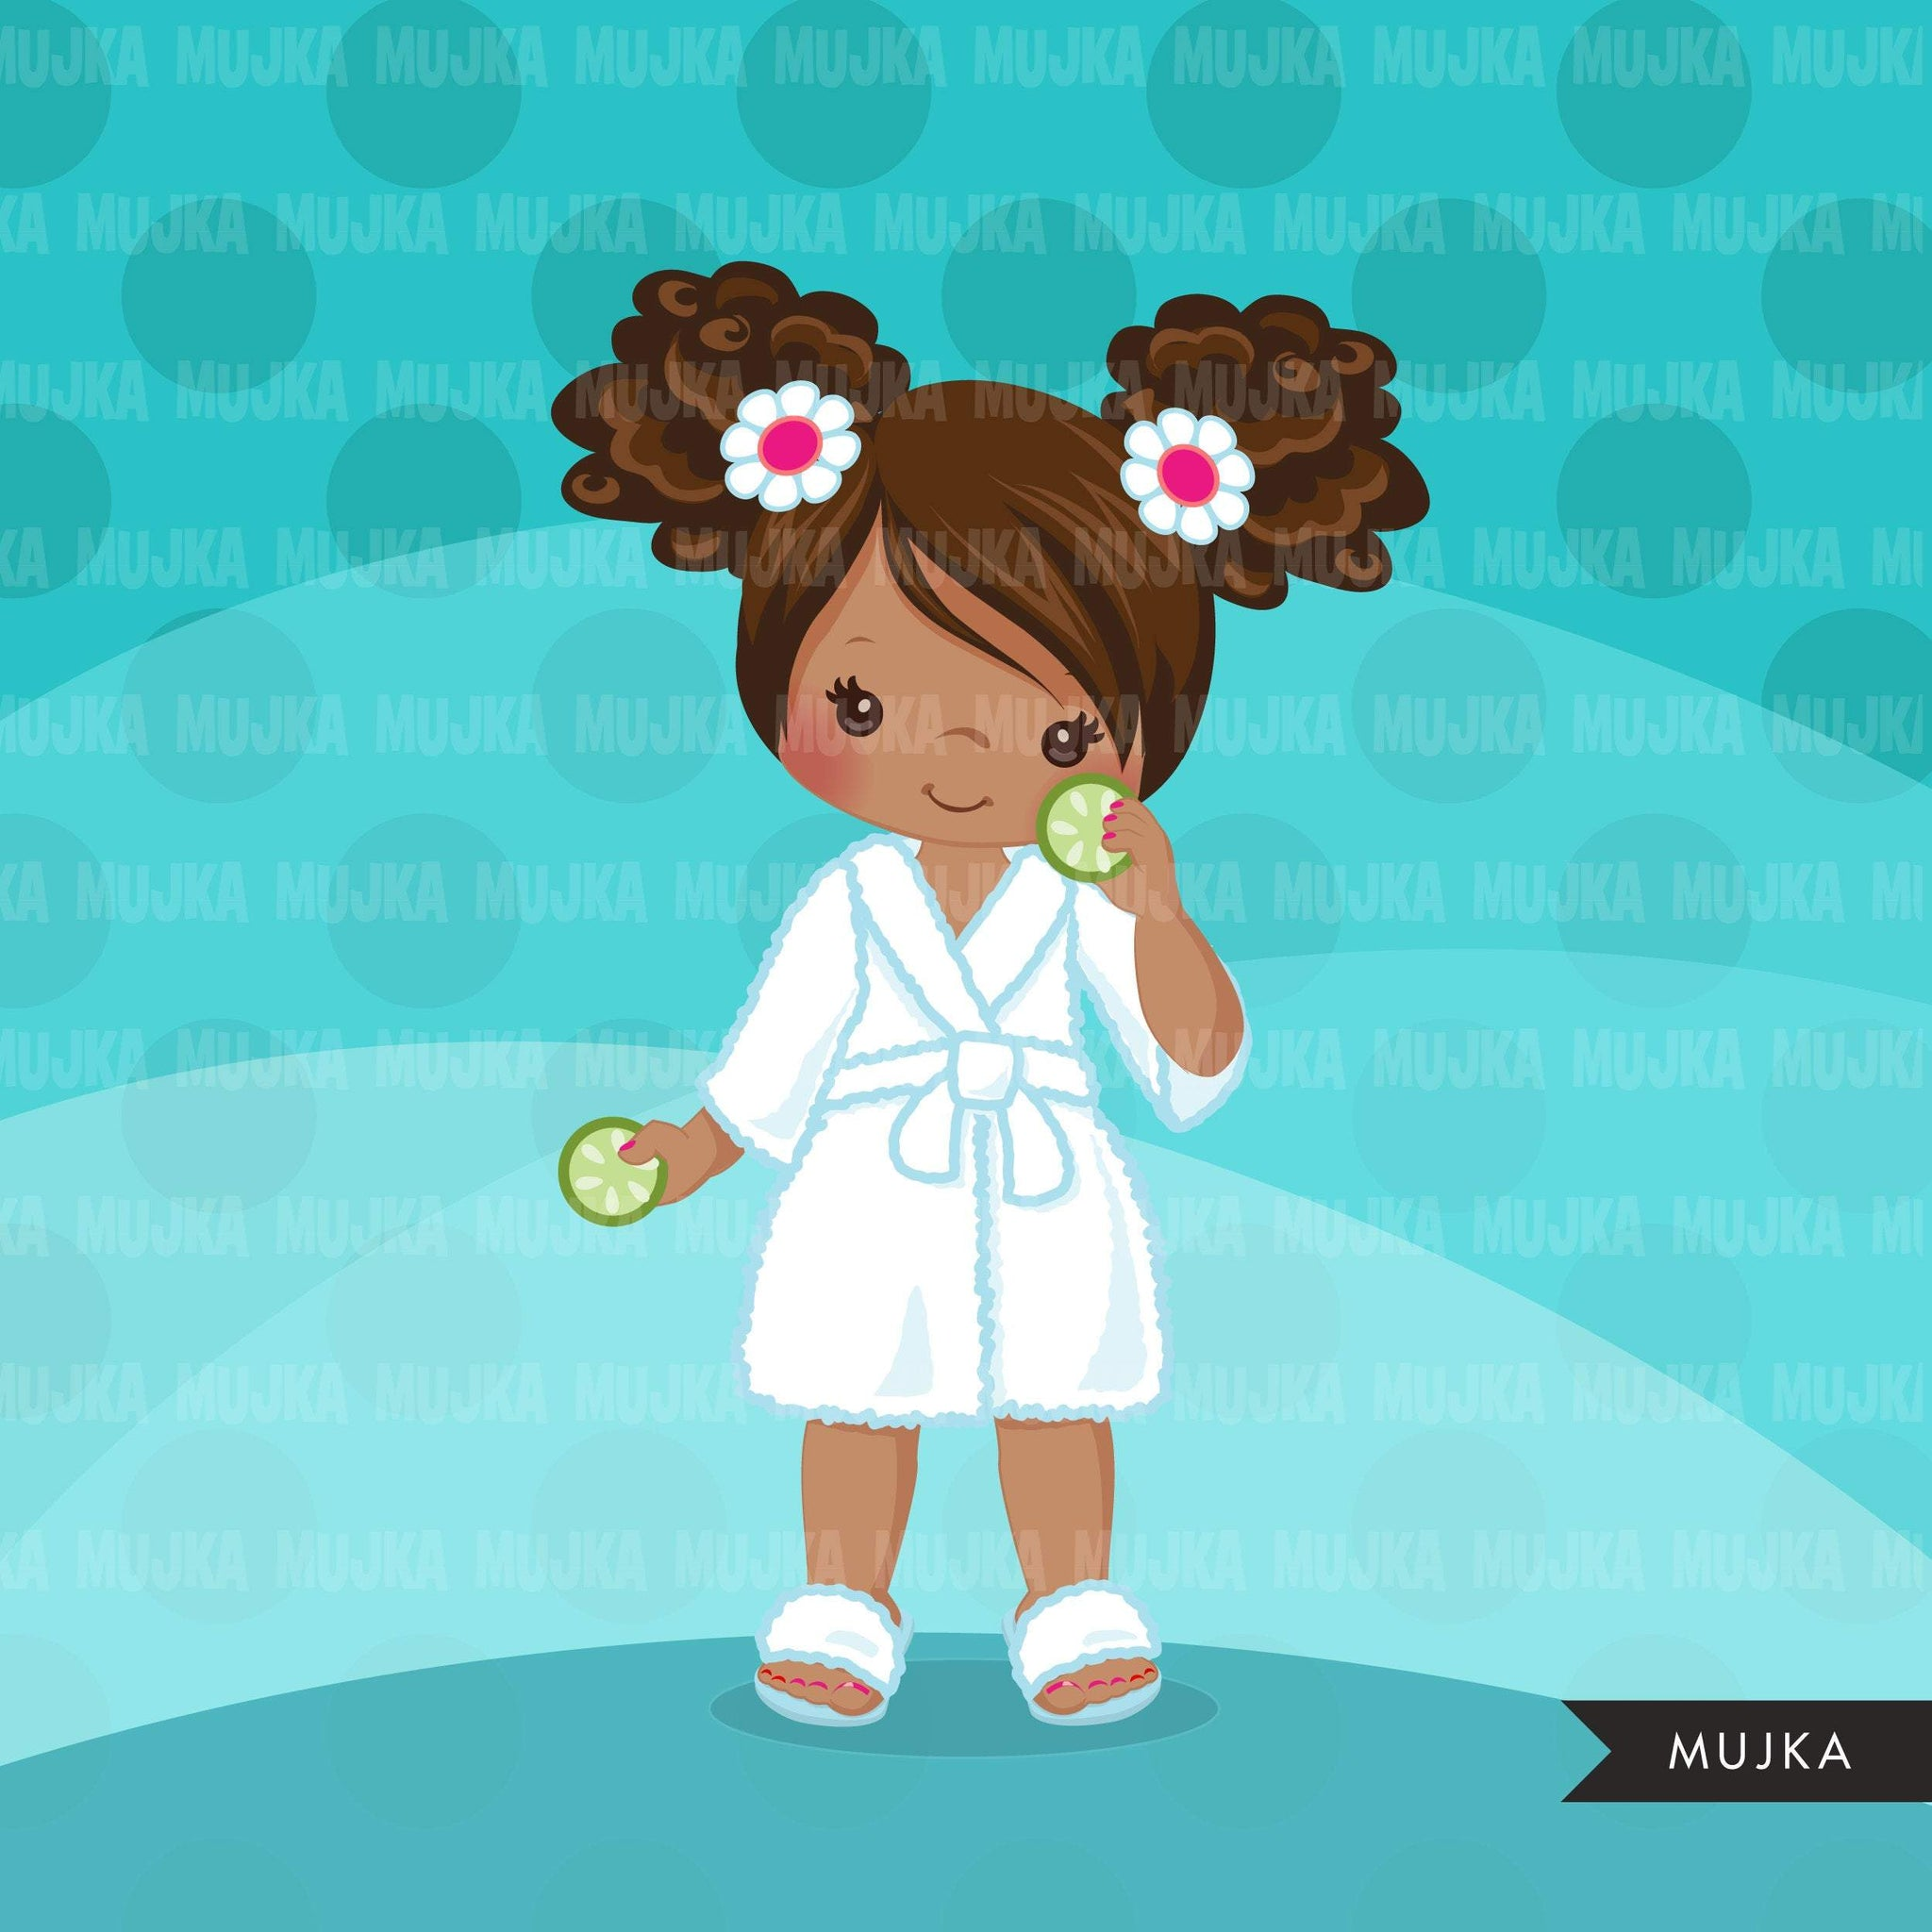 Spa clipart, party black girl clipart graphics, bath, bathrobe, cucumber, spa birthday graphics, commercial use clip art